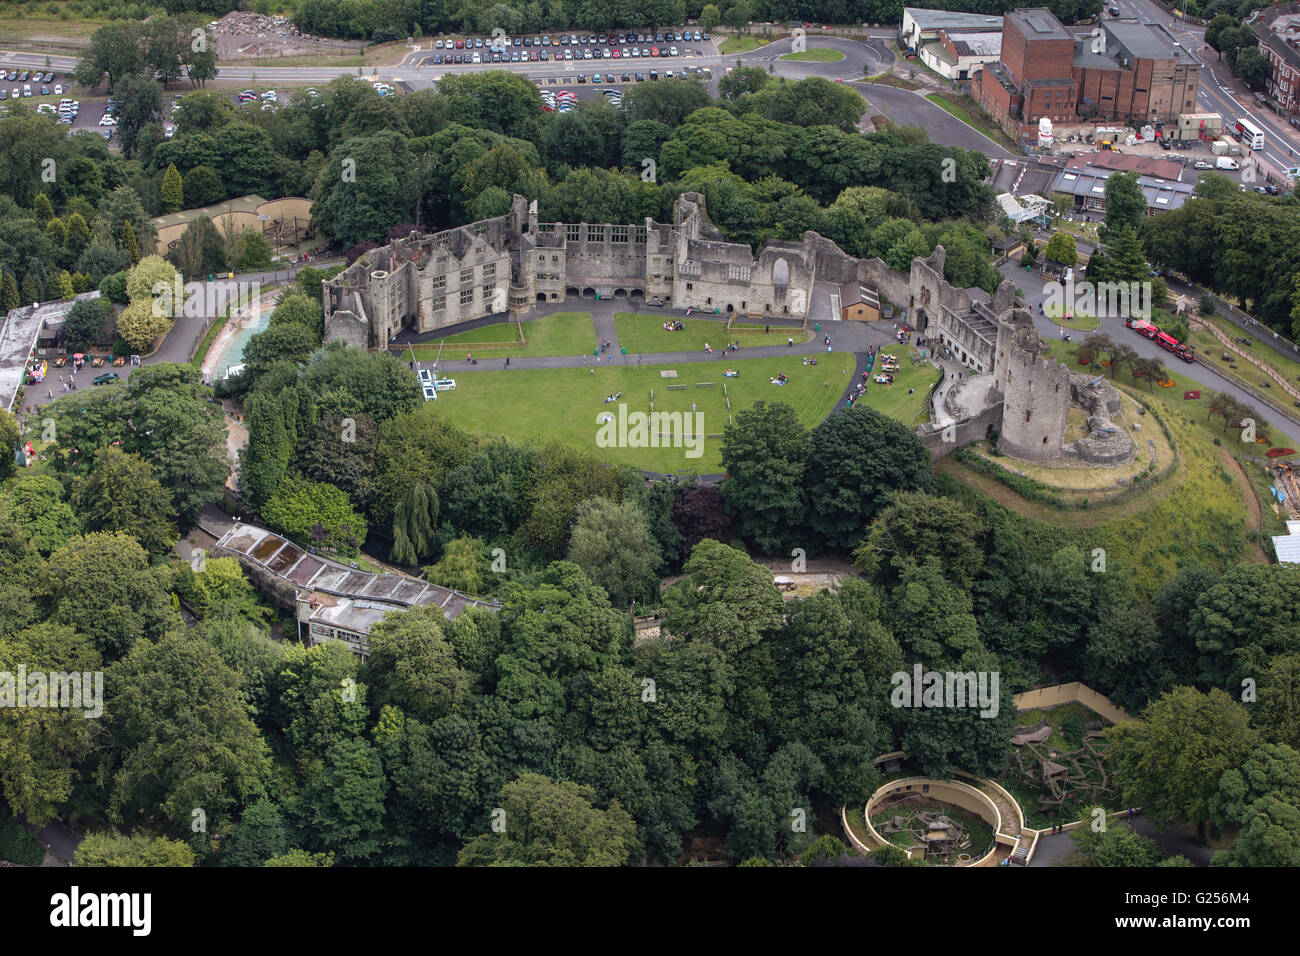 An aerial view of Dudley Castle, a ruined fortification in the West Midlands - Stock Image